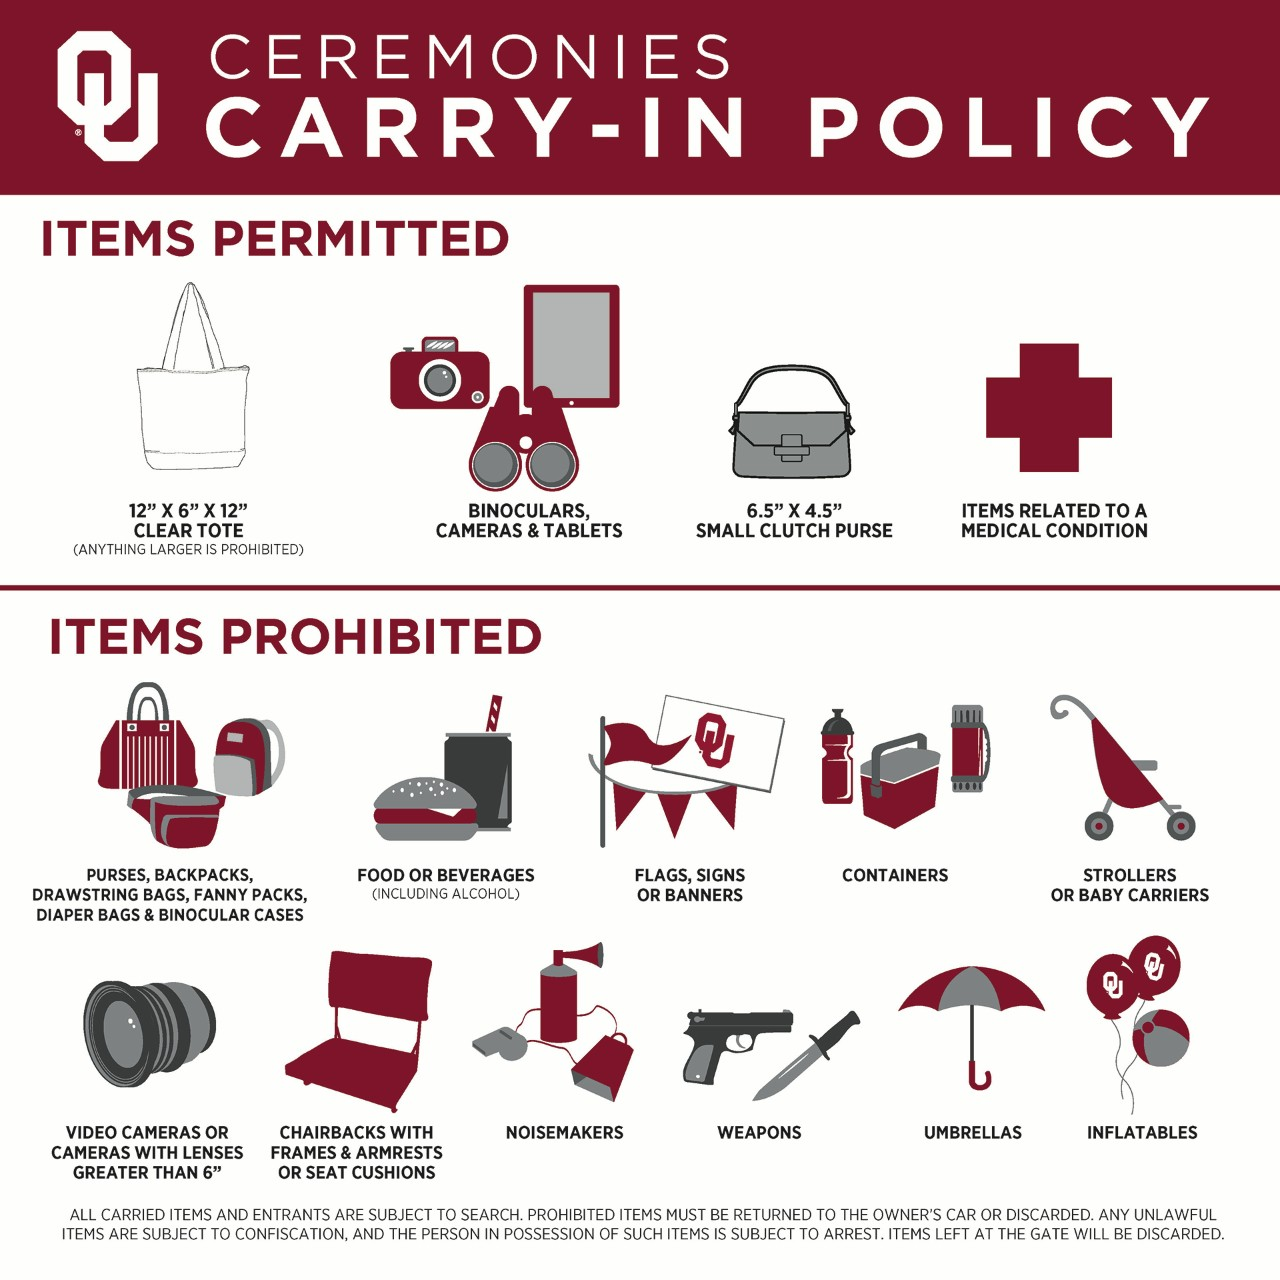 carry in policy graphic, same listed items as text list above